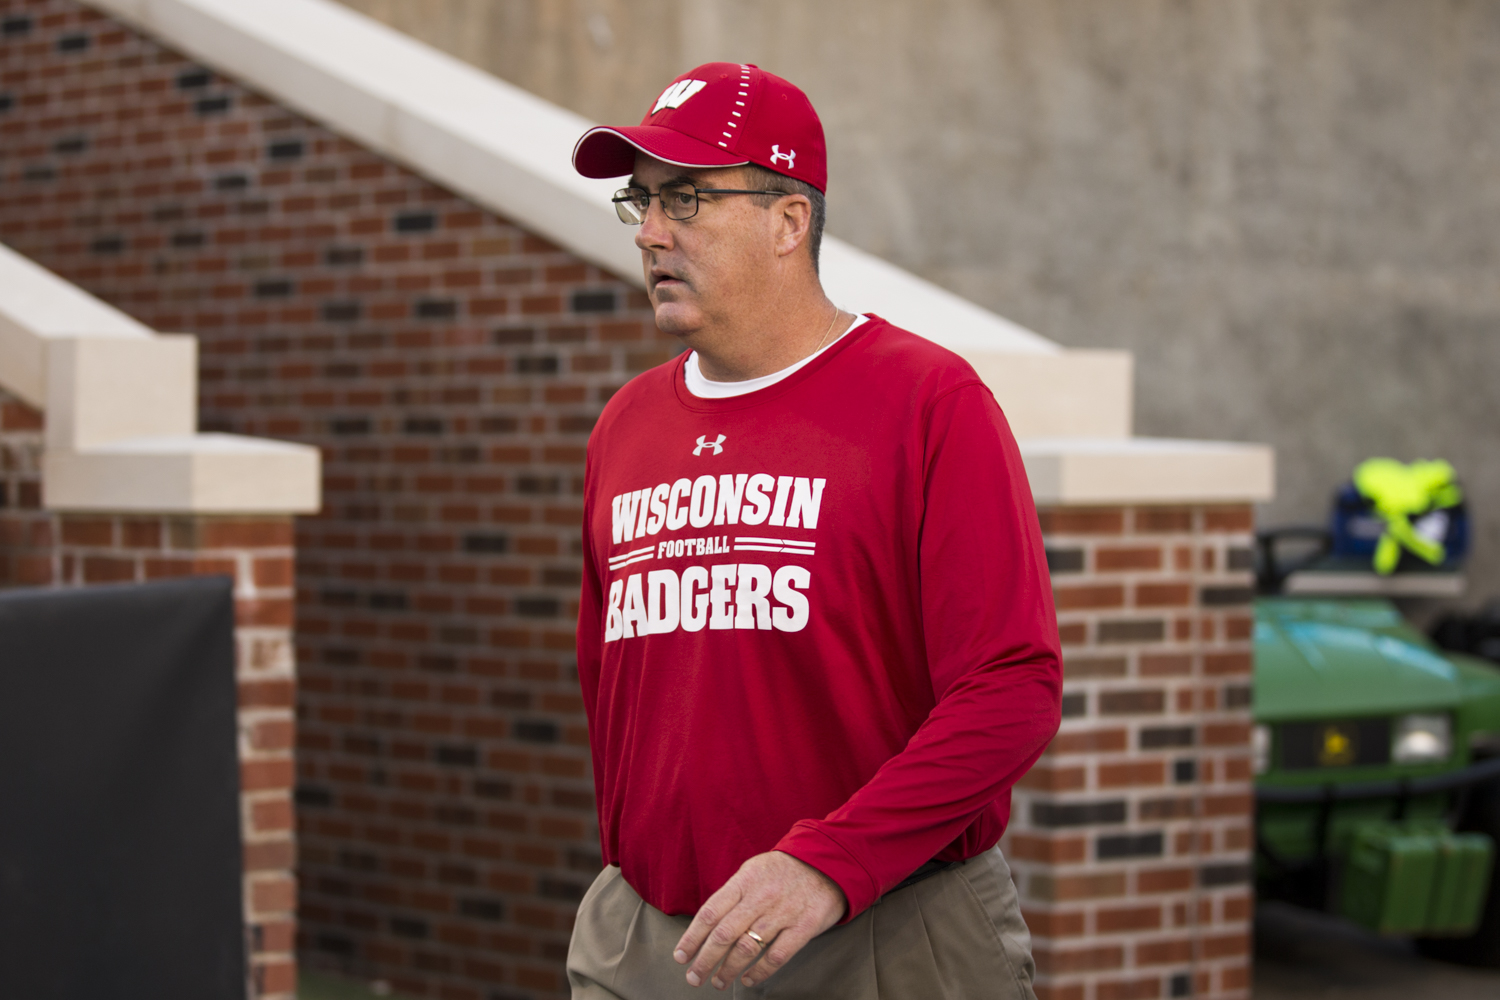 Wisconsin+Head+Coach+Paul+Chryst+takes+the+field+before+Iowa%27s+game+against+Wisconsin+at+Kinnick+Stadium+on+Saturday%2C+September+22%2C+2018.+The+Badgers+defeated+the+Hawkeyes+28-17.